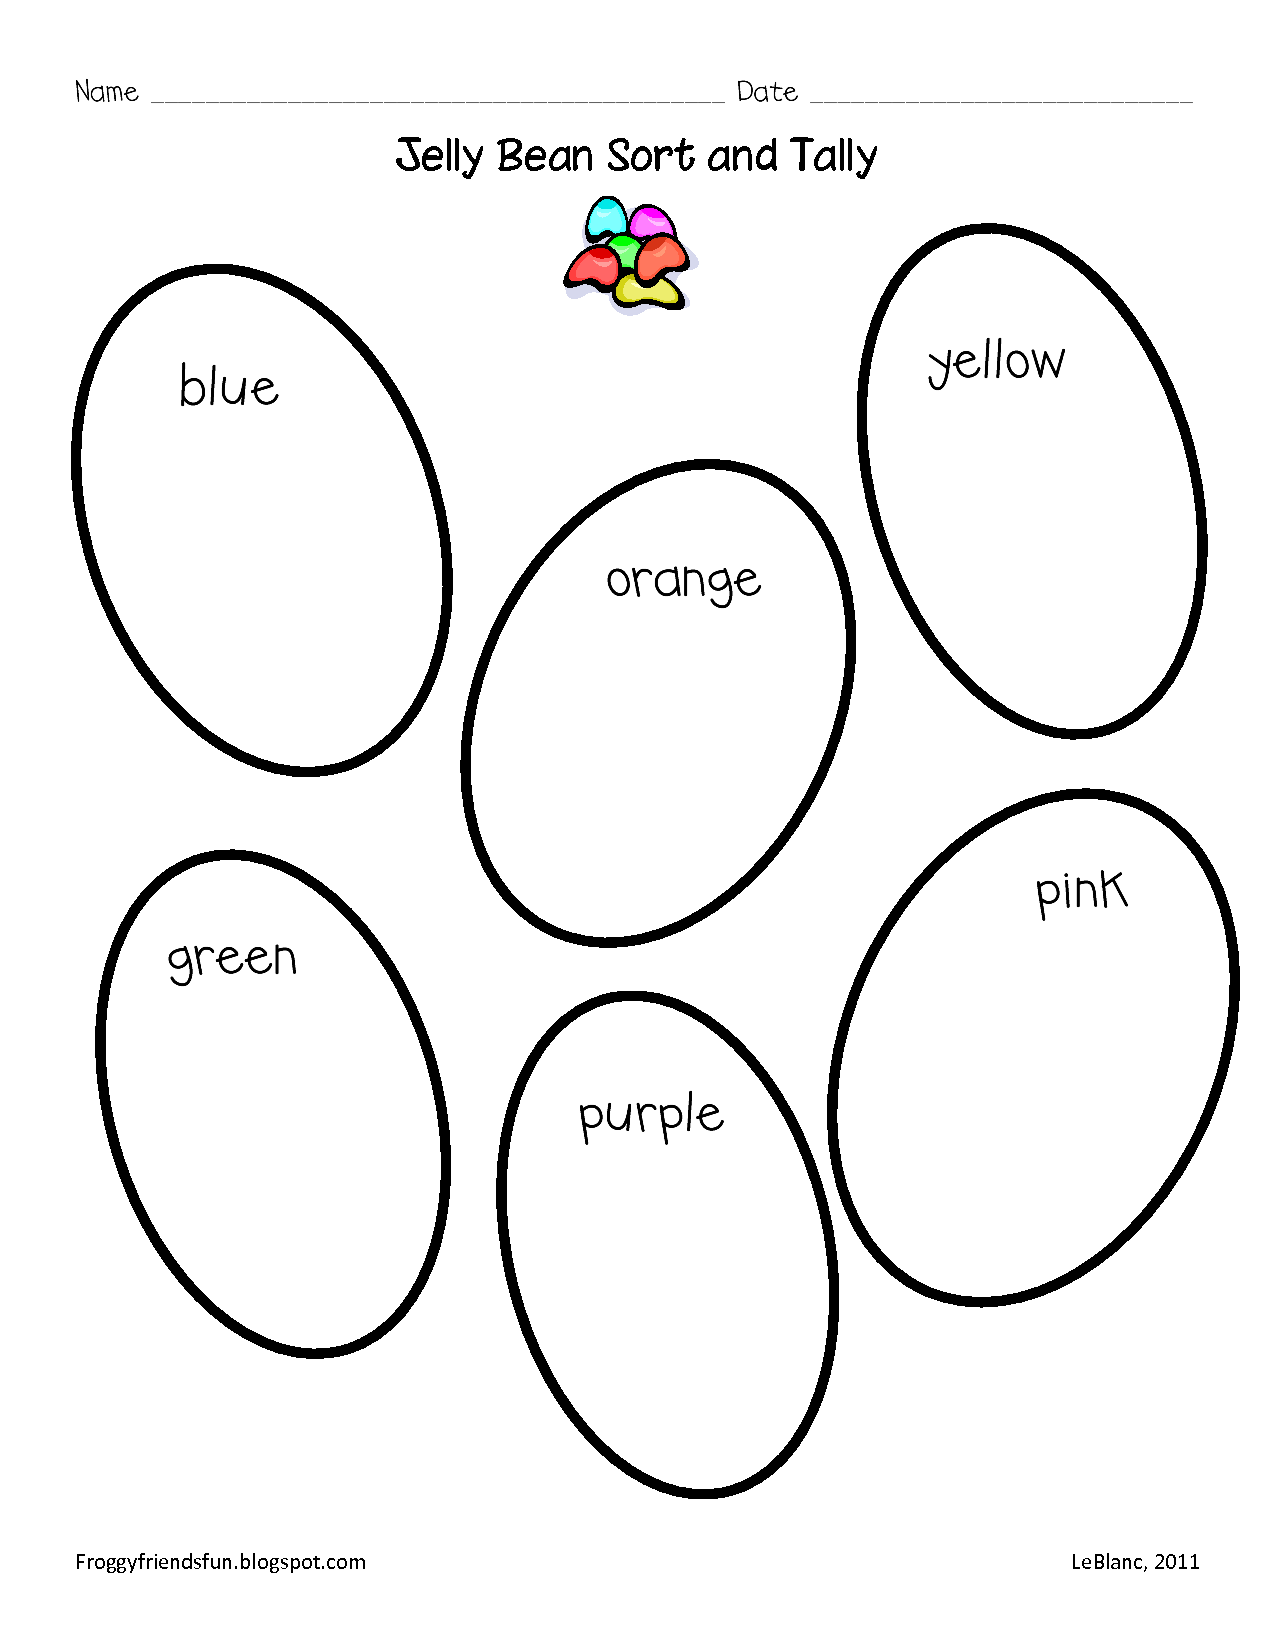 Jelly Beans Free Online Coloring Pages Color On Pages Jelly Bean Coloring Page